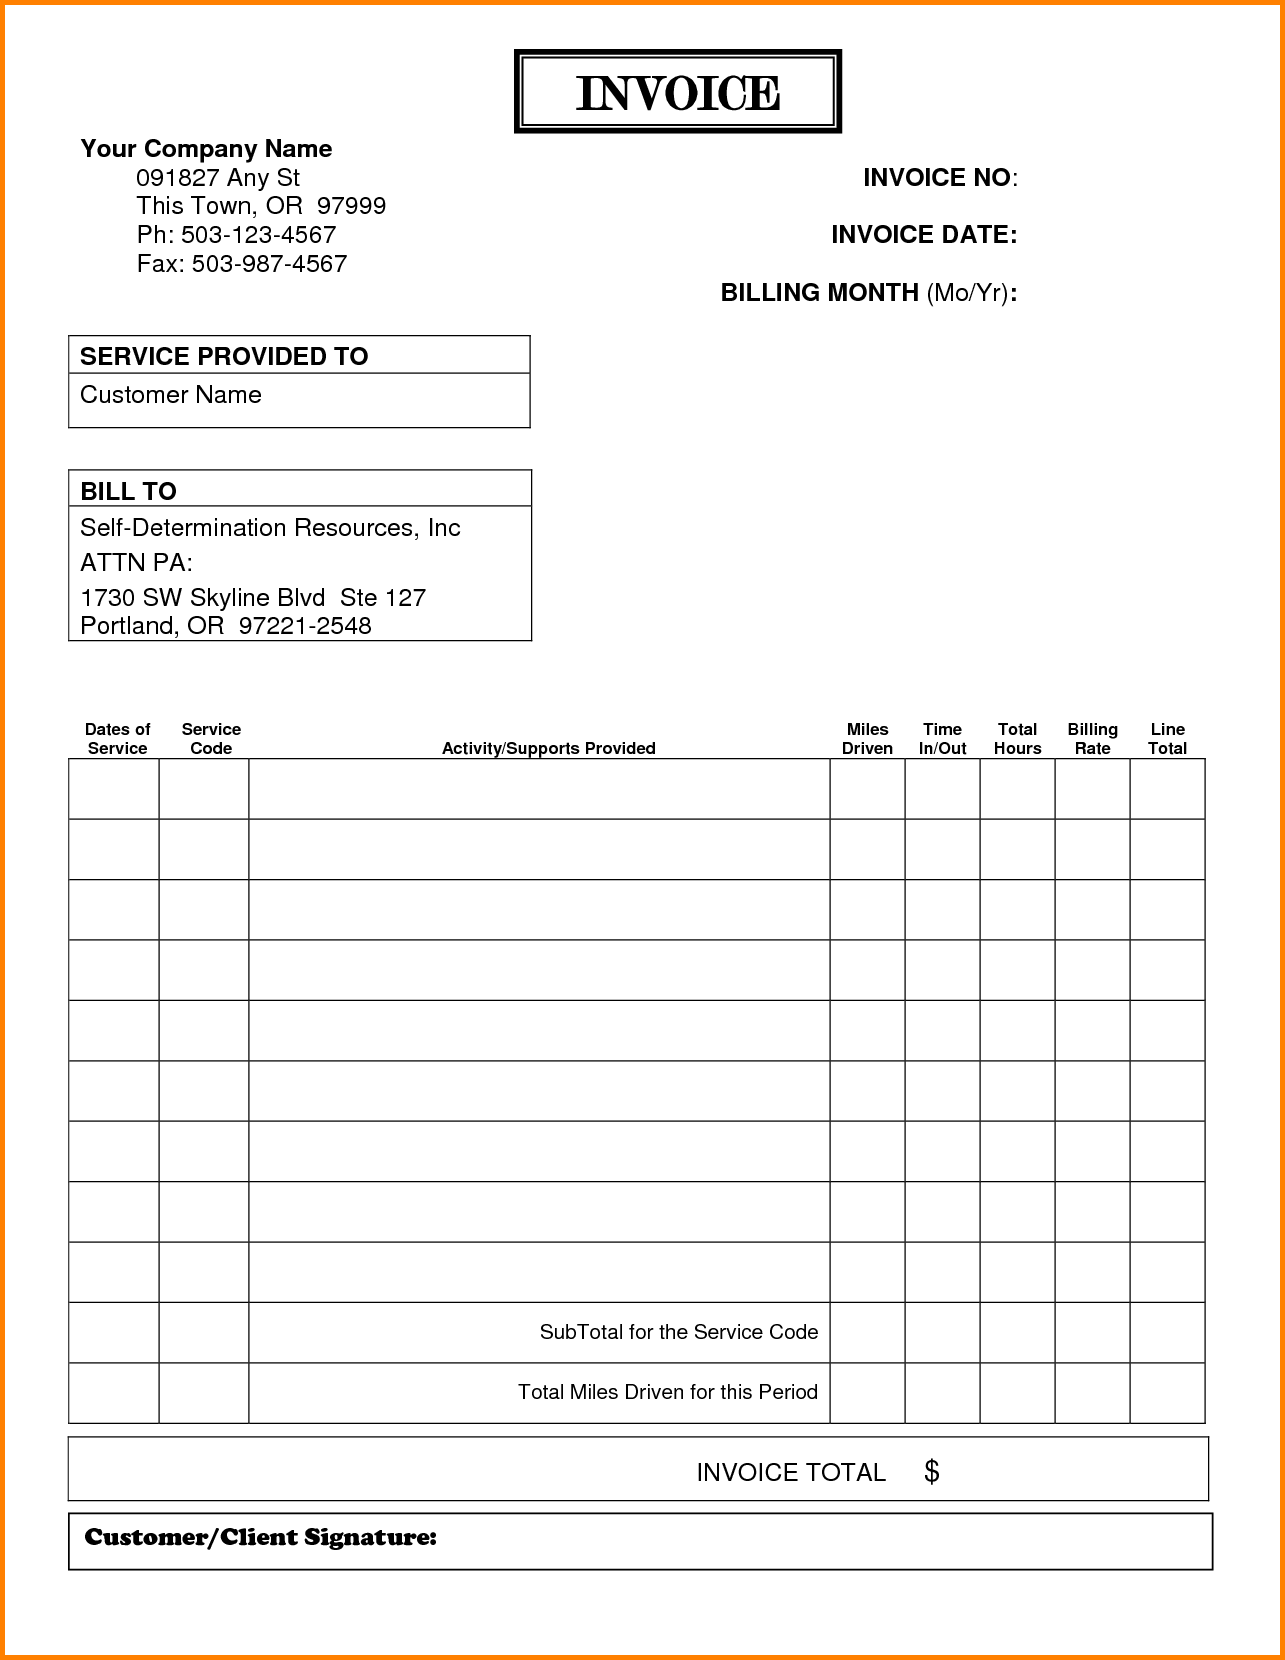 Samples Of Invoices Free and 8 format for Billing Invoices Simple Bill